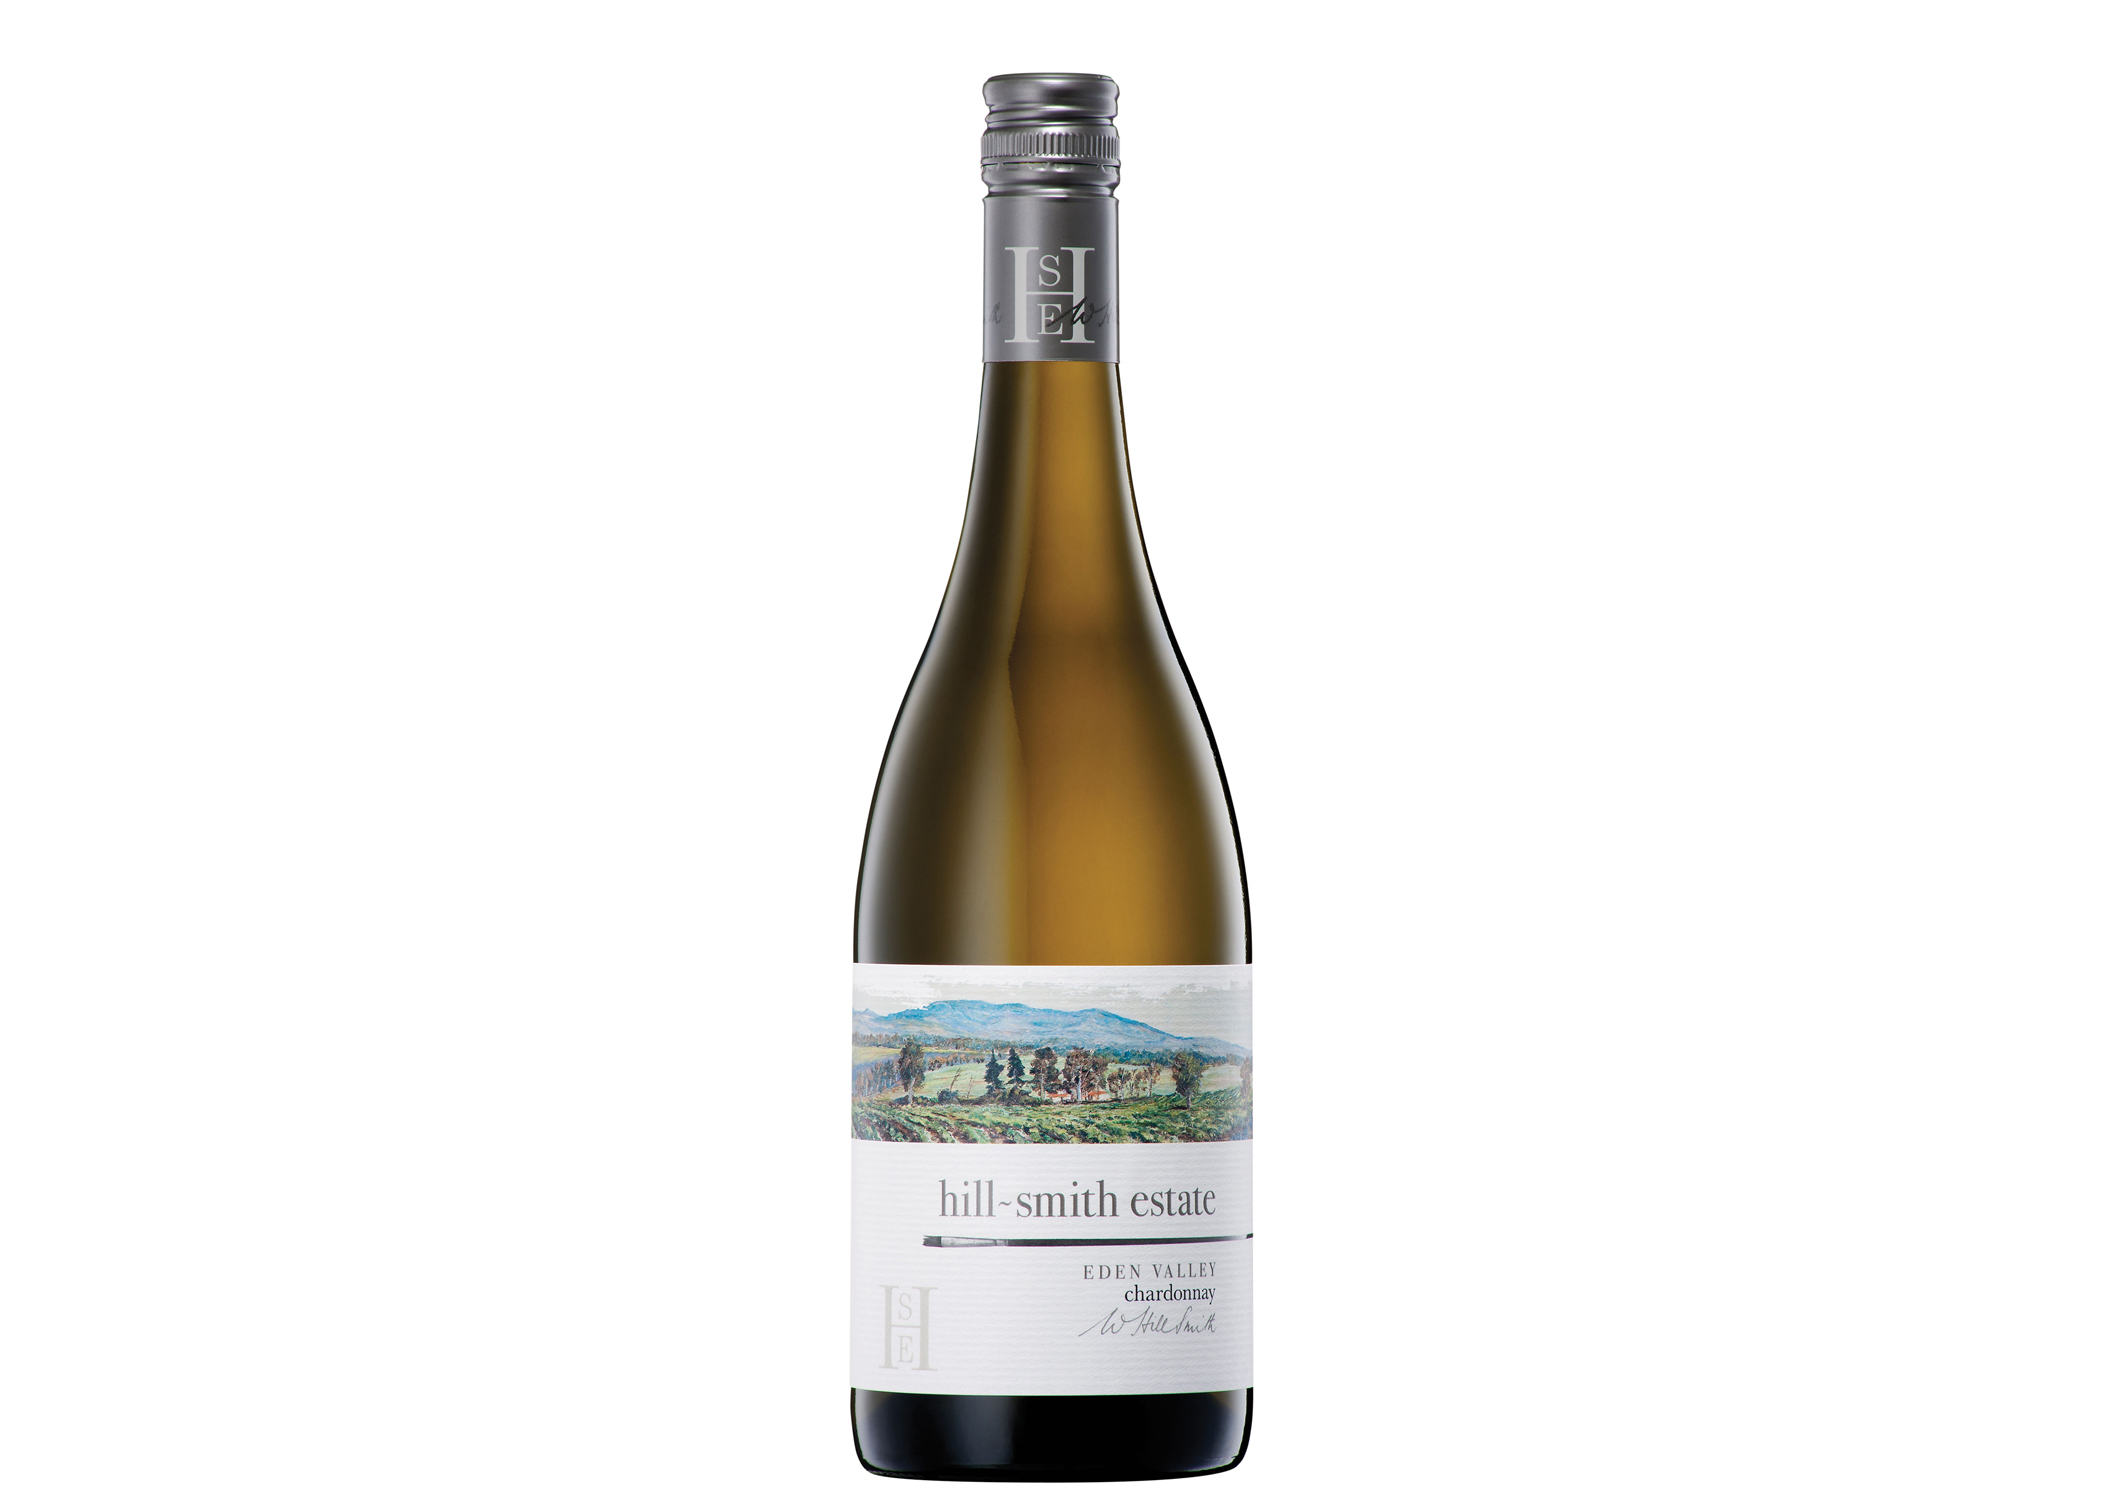 HIll-Smith Estate Eden Valley Chardonnay 2015